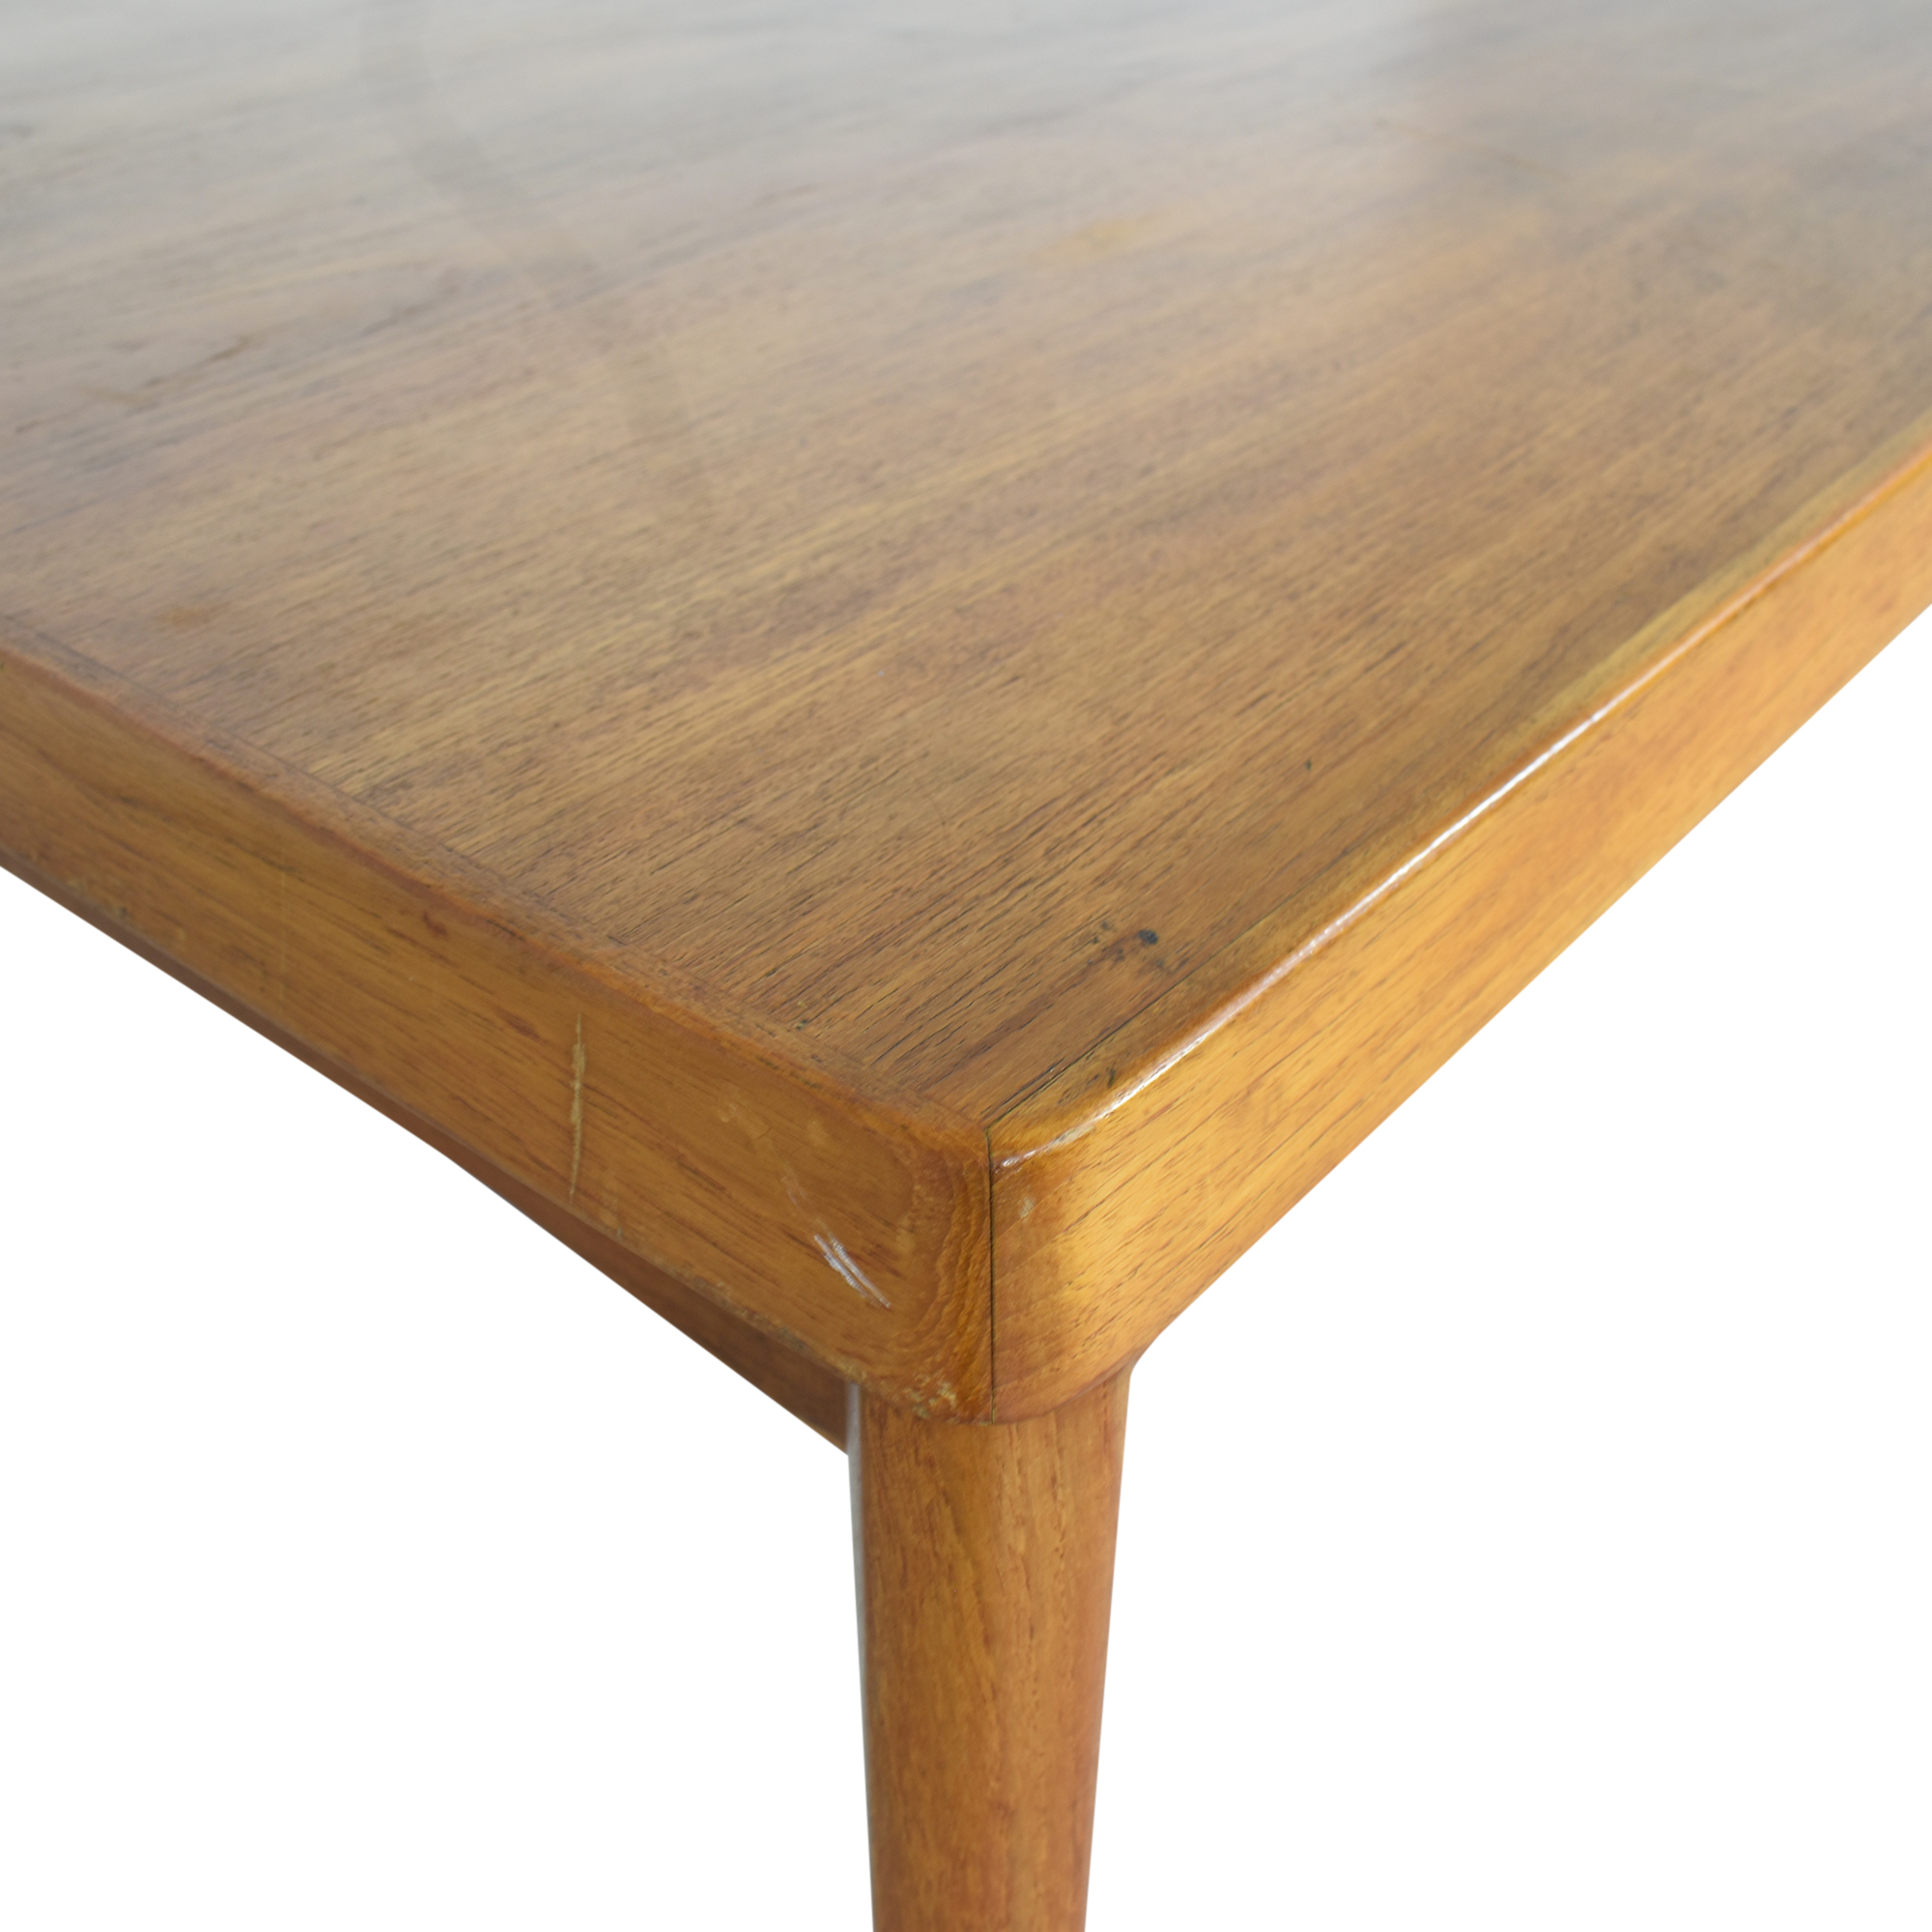 Danish-Style Modern Extending Dining Table dimensions